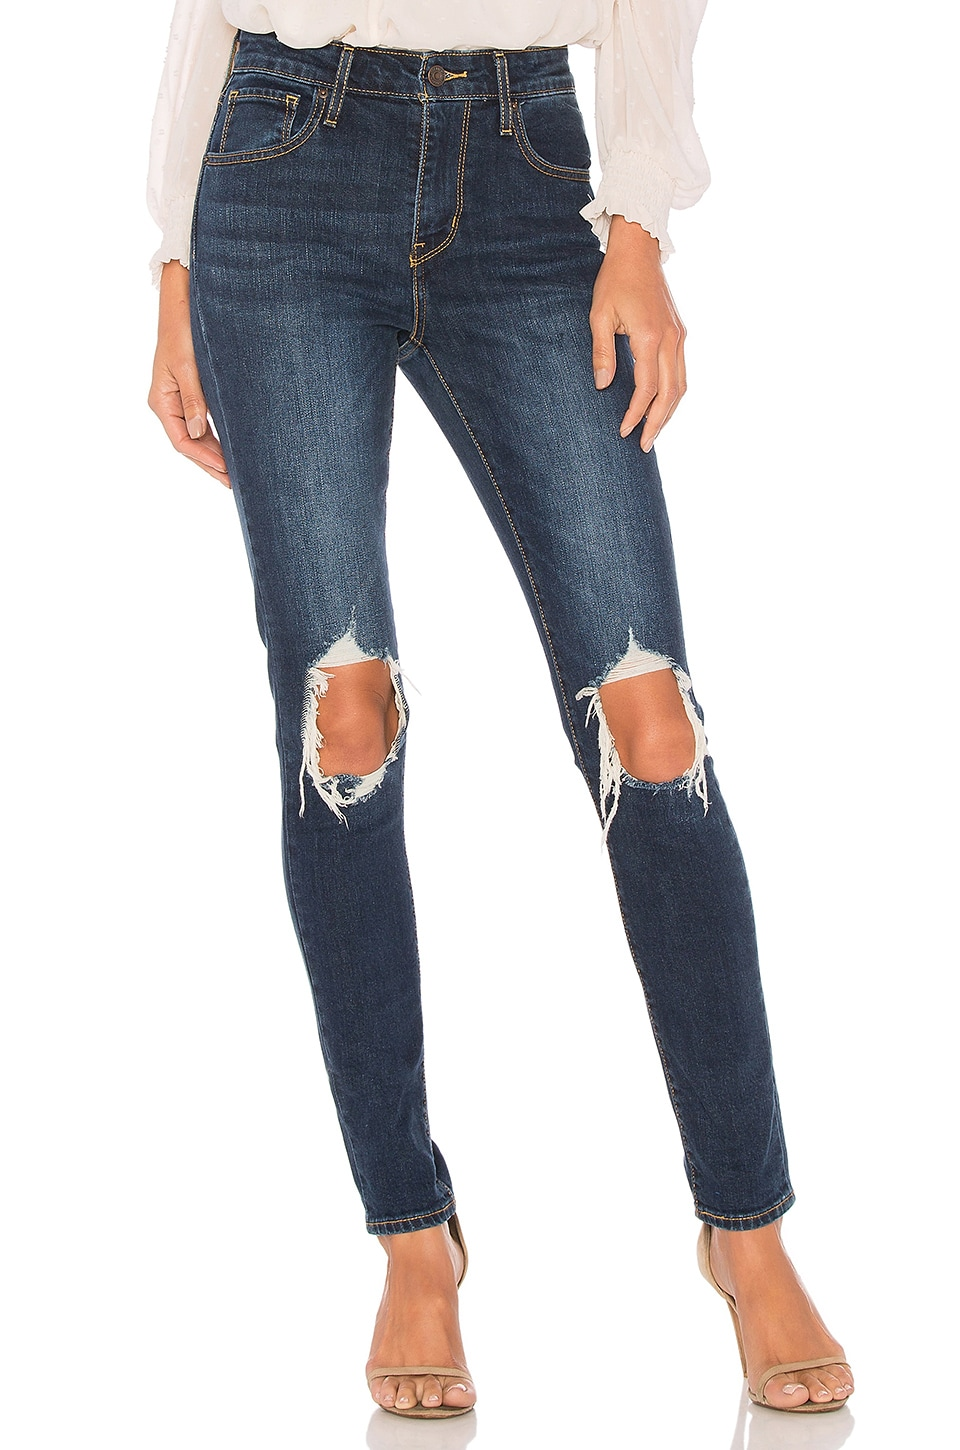 LEVI'S 721 High Rise Skinny in Rough Day